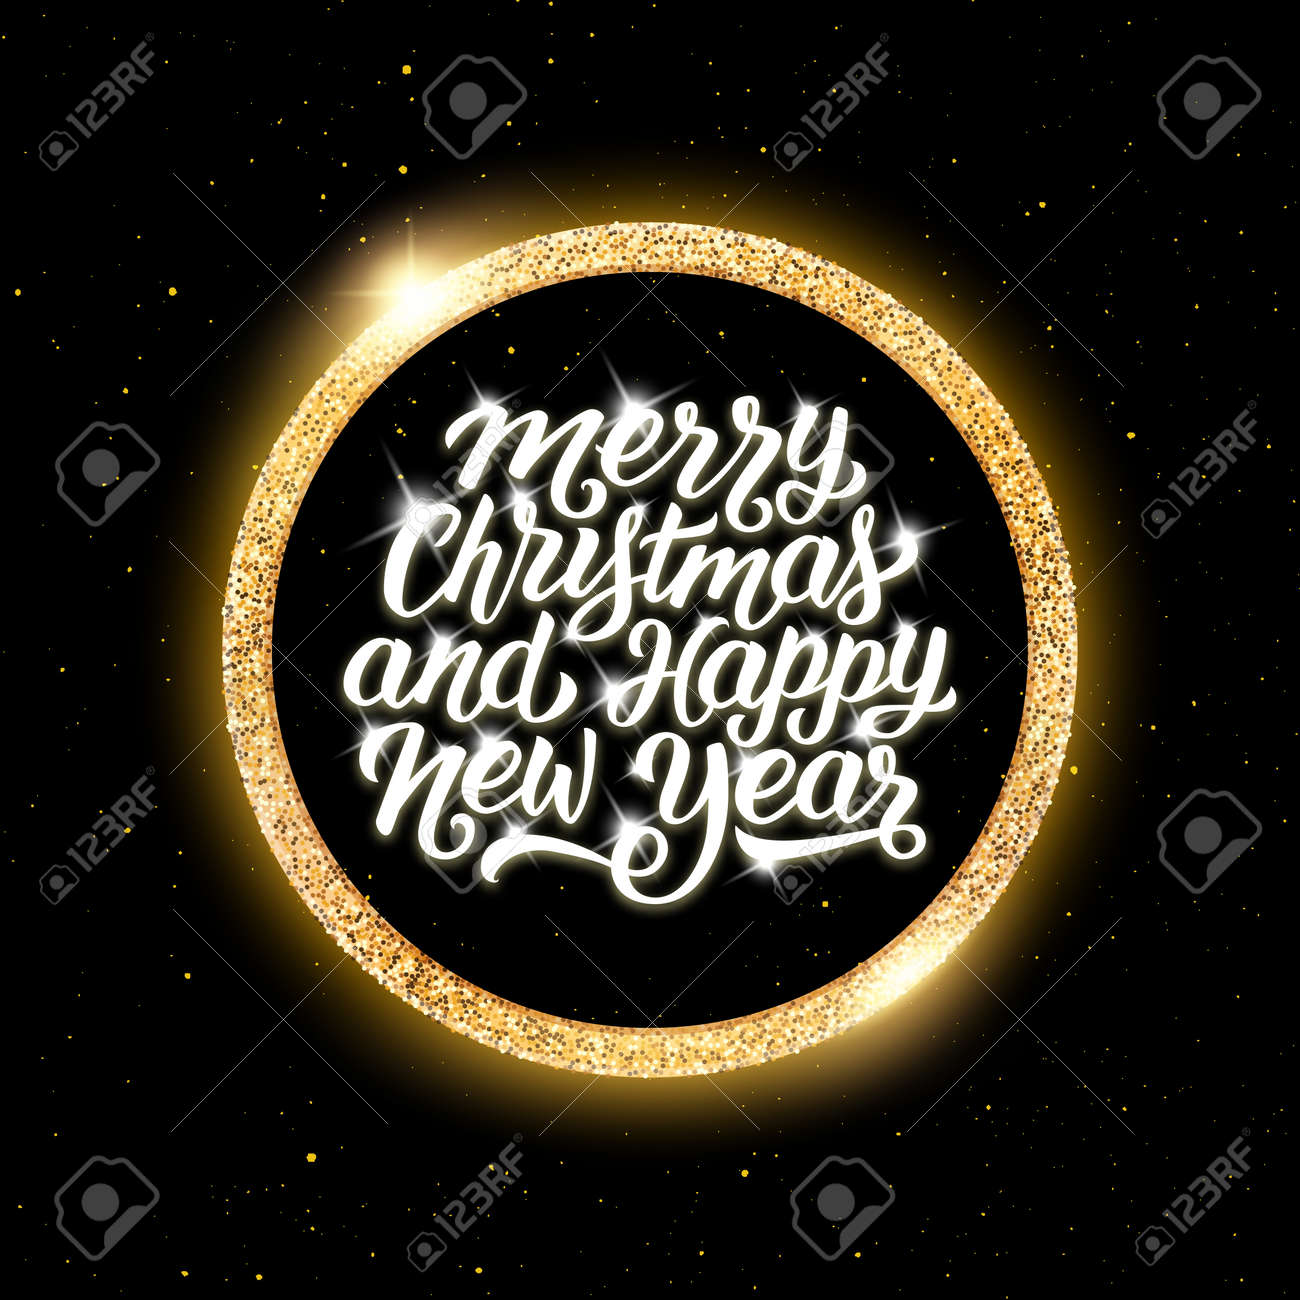 Merry christmas and happy new year text in round golden frame merry christmas and happy new year text in round golden frame on black background with yellow m4hsunfo